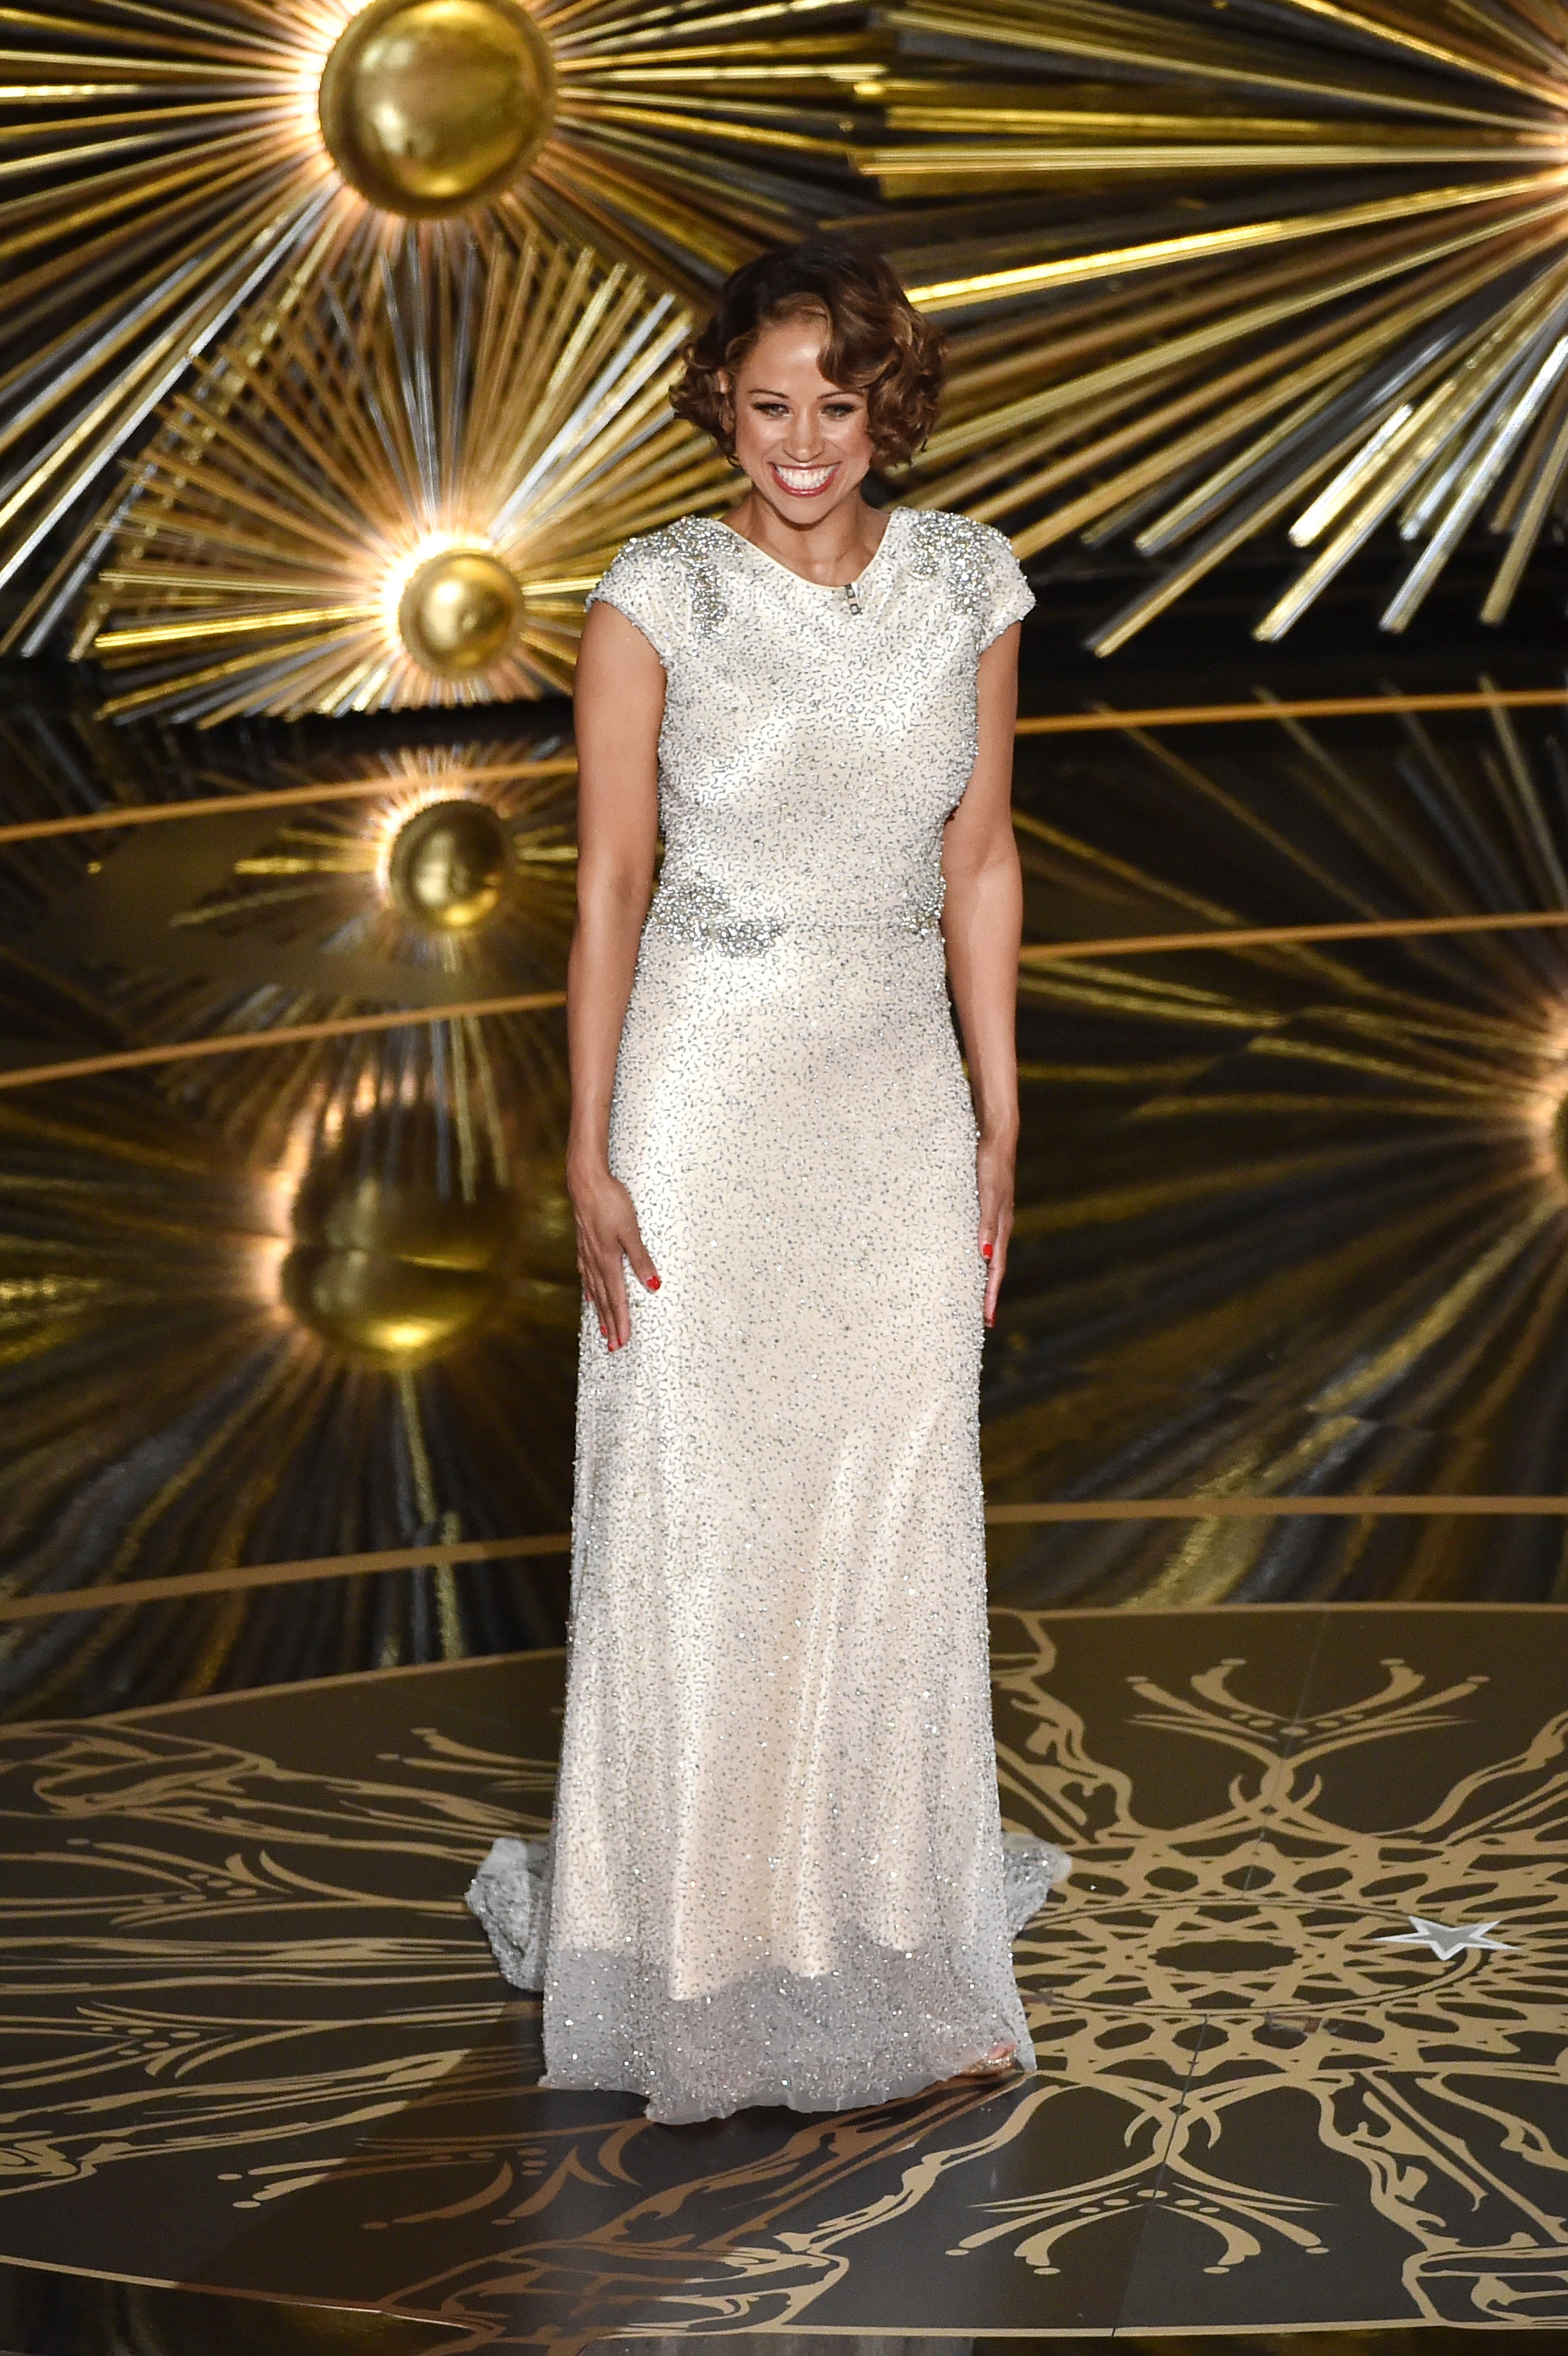 Stacey Dash confuses audience at the 88th Annual Academy Awards. (Photo courtesy of The Oscars)